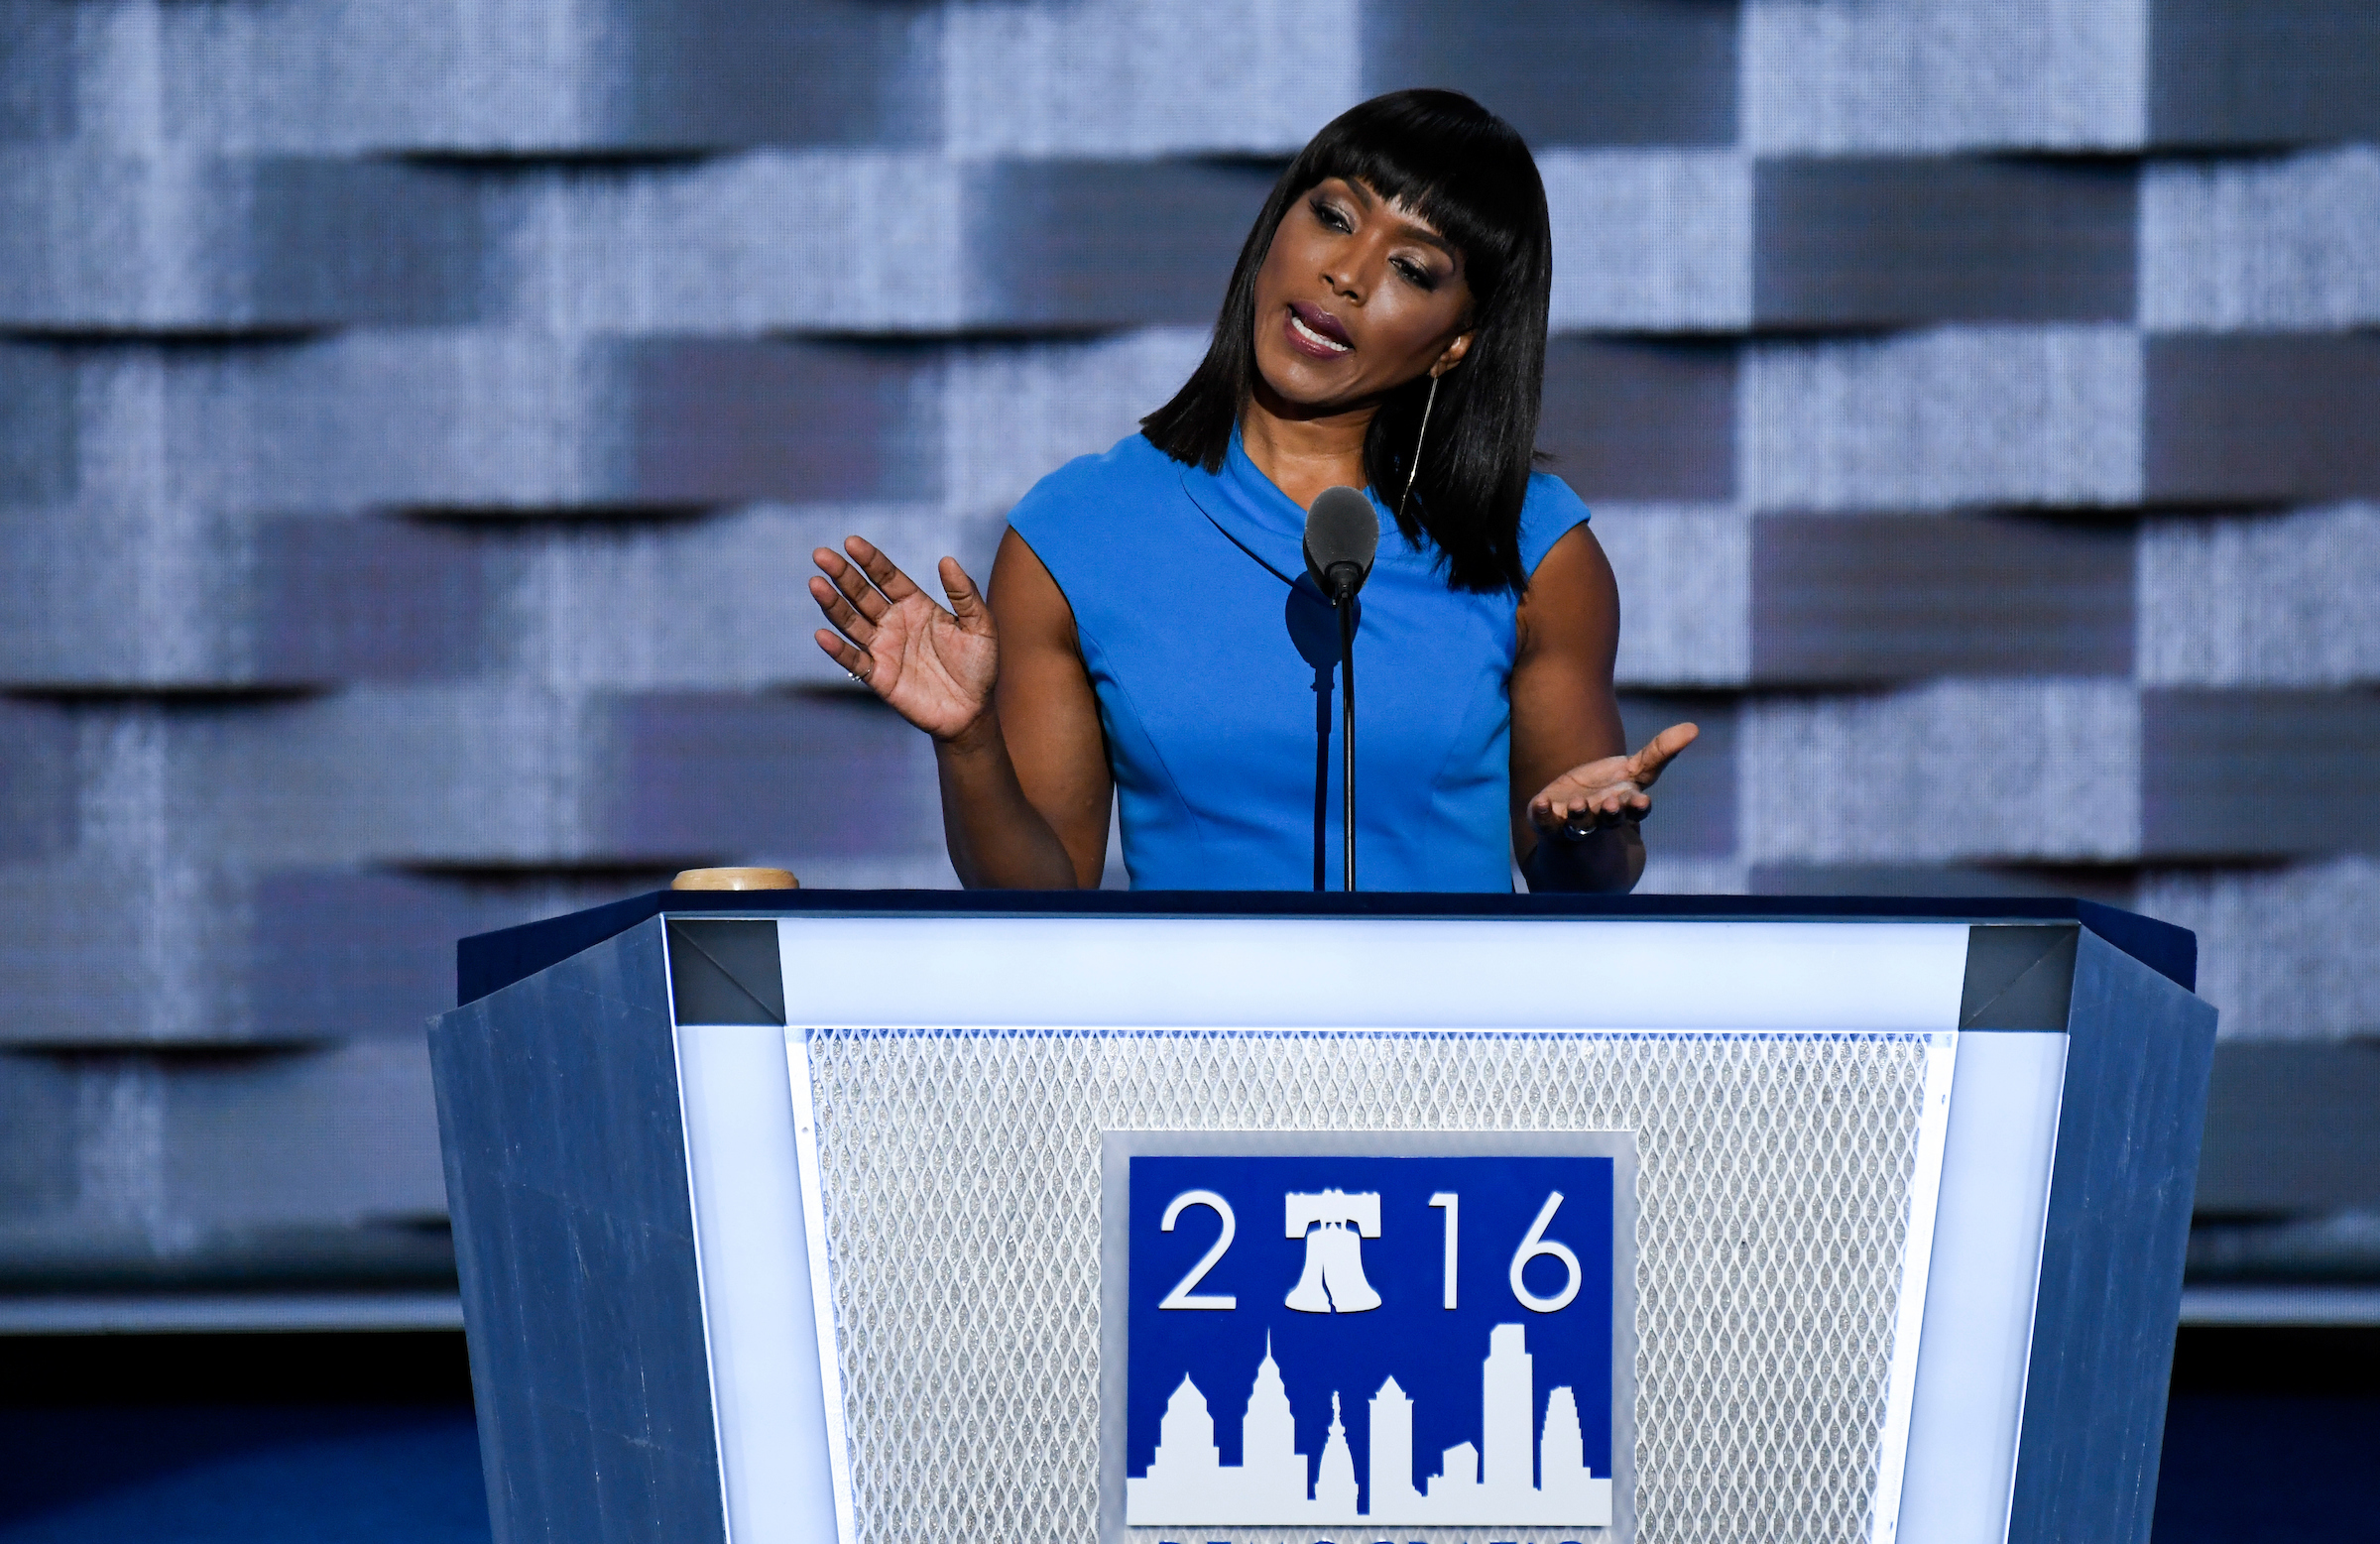 UNITED STATES - JULY 27: Actress Angela Bassett speaks at the Democratic National Convention in Philadelphia on Wednesday, July 27, 2016. (Photo By Bill Clark/CQ Roll Call)